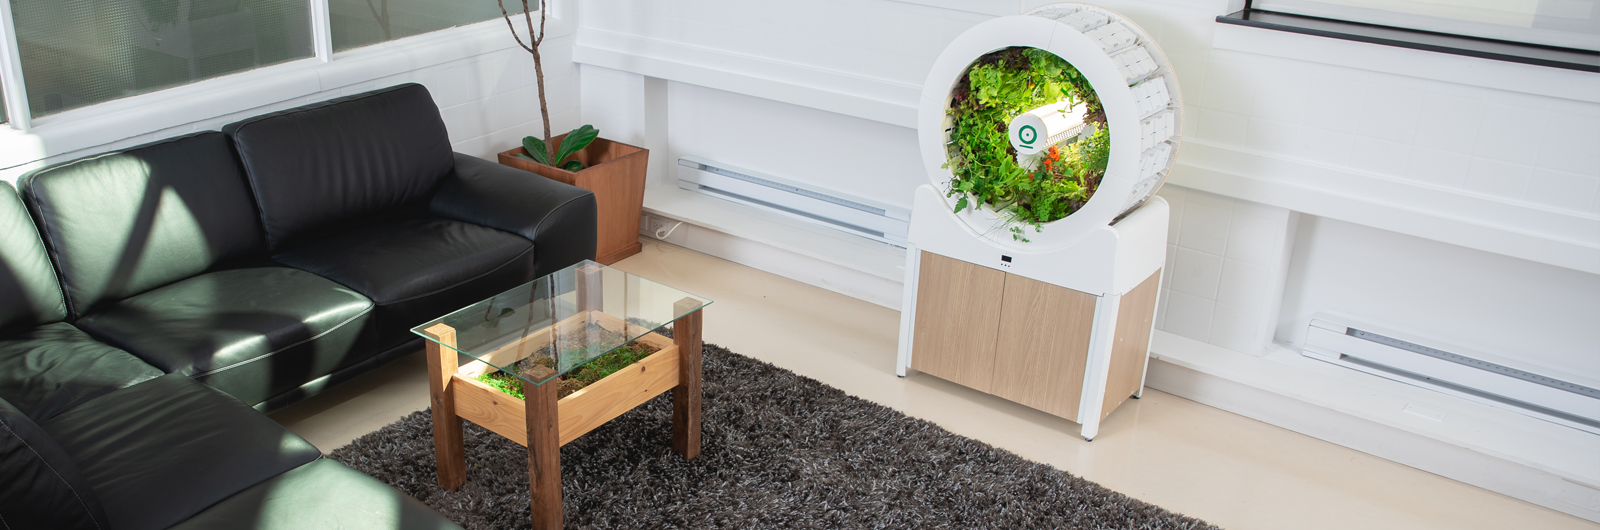 Holy Hell, There's a Garden in Your Living Room